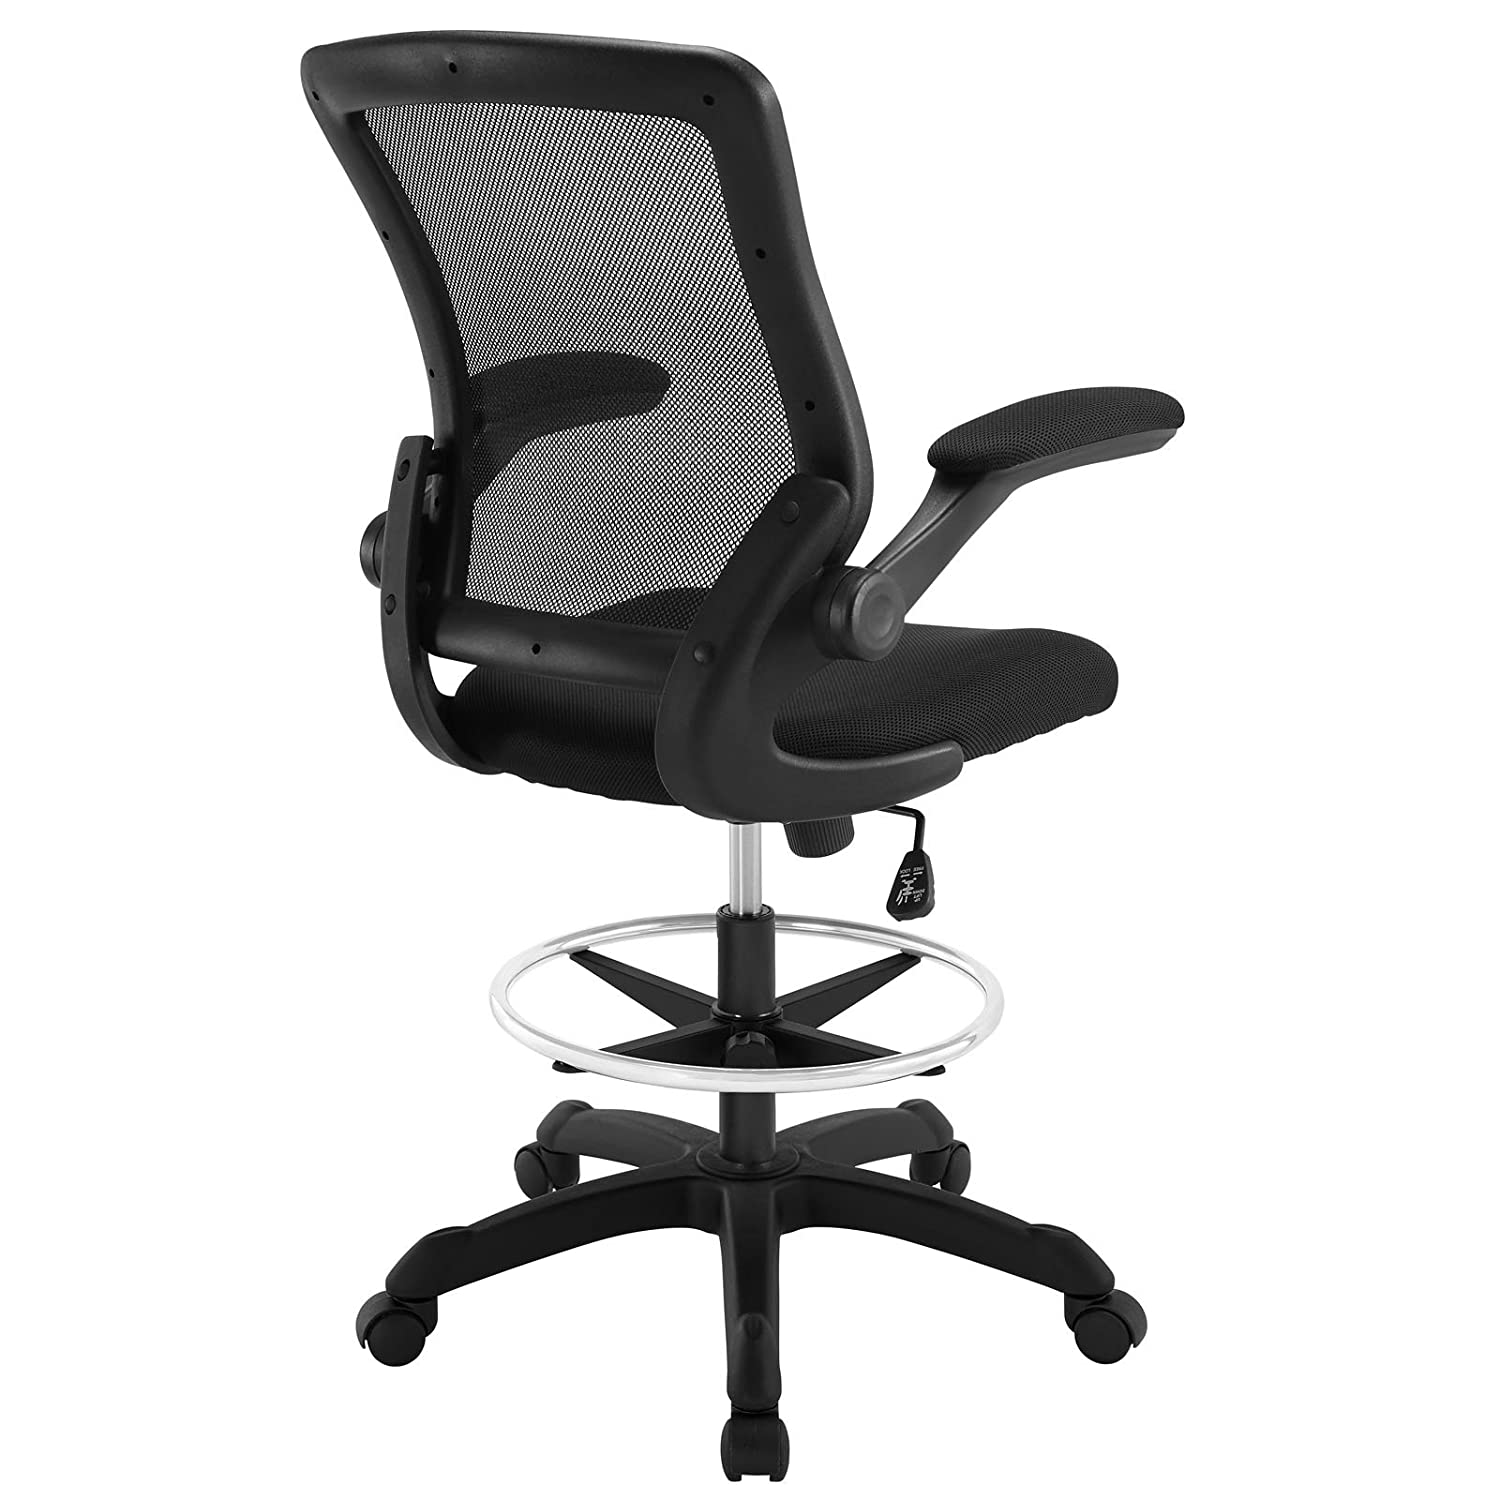 Amazon Modway Veer Drafting Stool Chair 26L x 26W x 49 5H